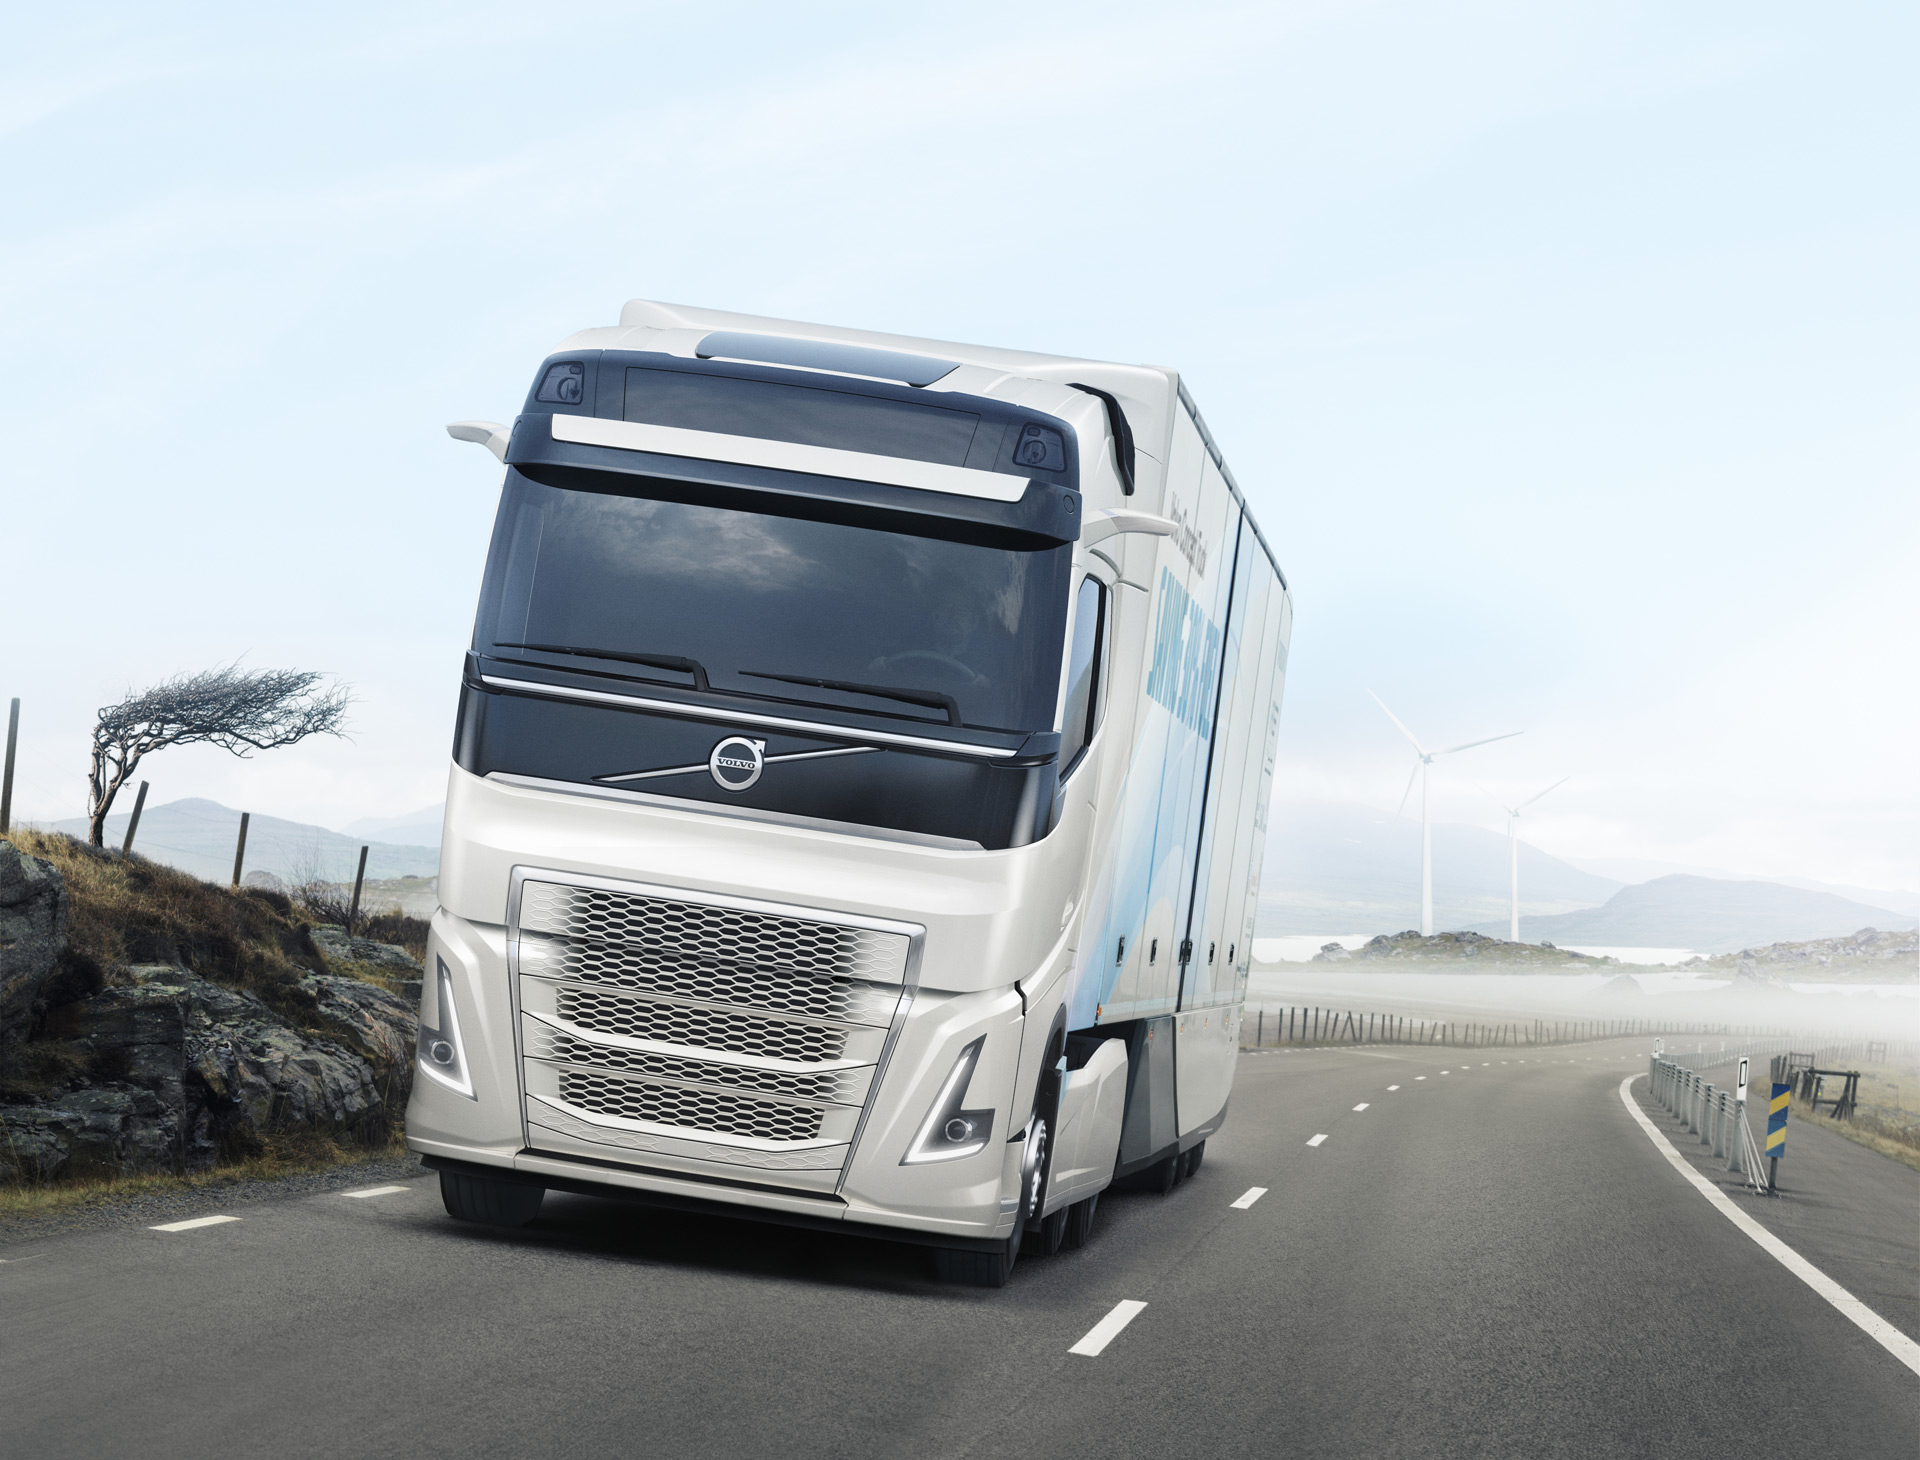 Volvo Truck Concept Uses 30 Percent Less Fuel Thanks To Weight Better Aero